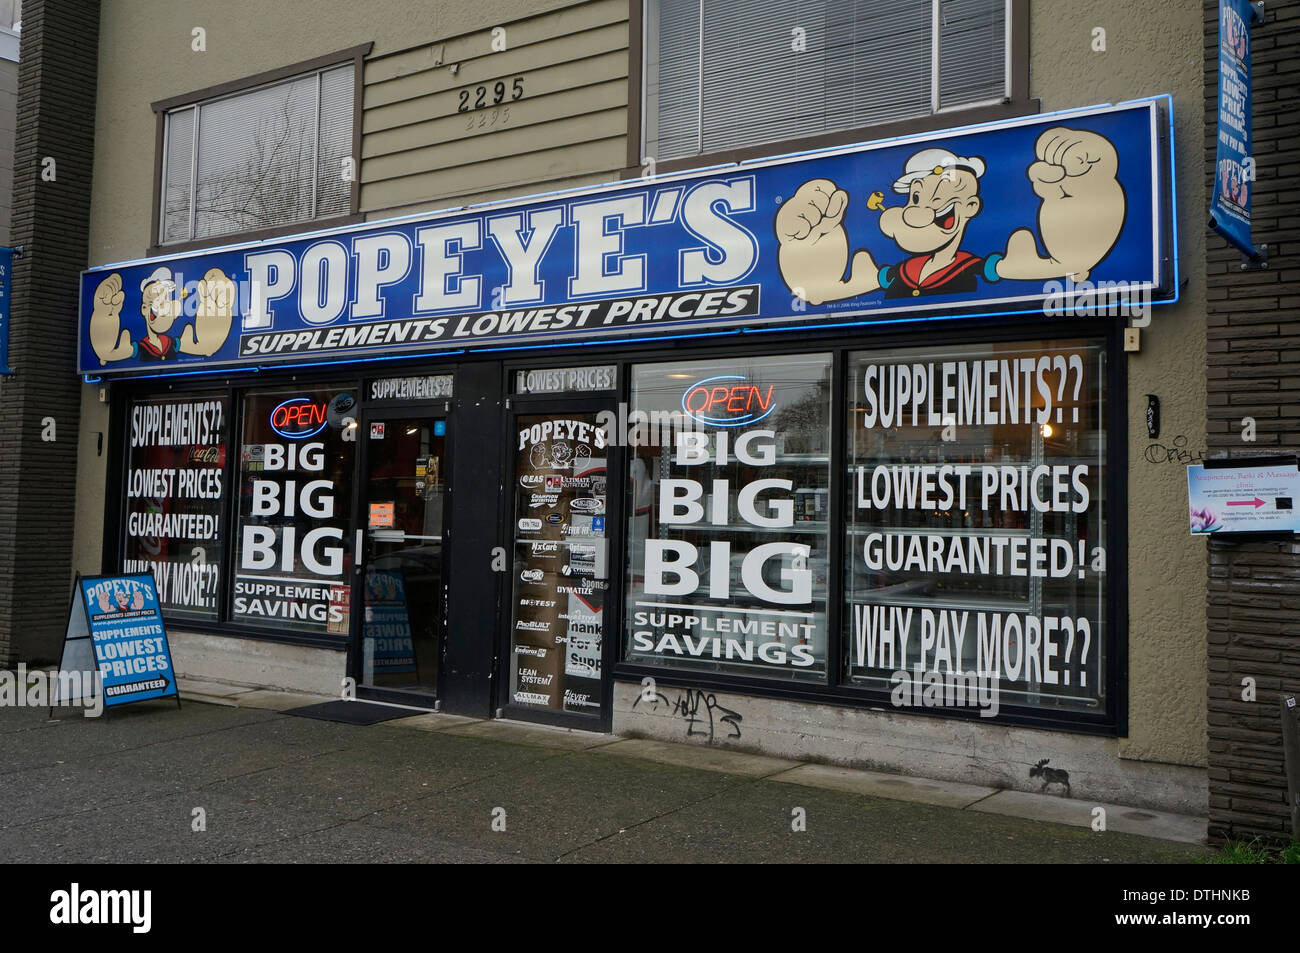 Popeyes vitamin and supplement store Vancouver BC Canada Stock Photo Royalty Free Image